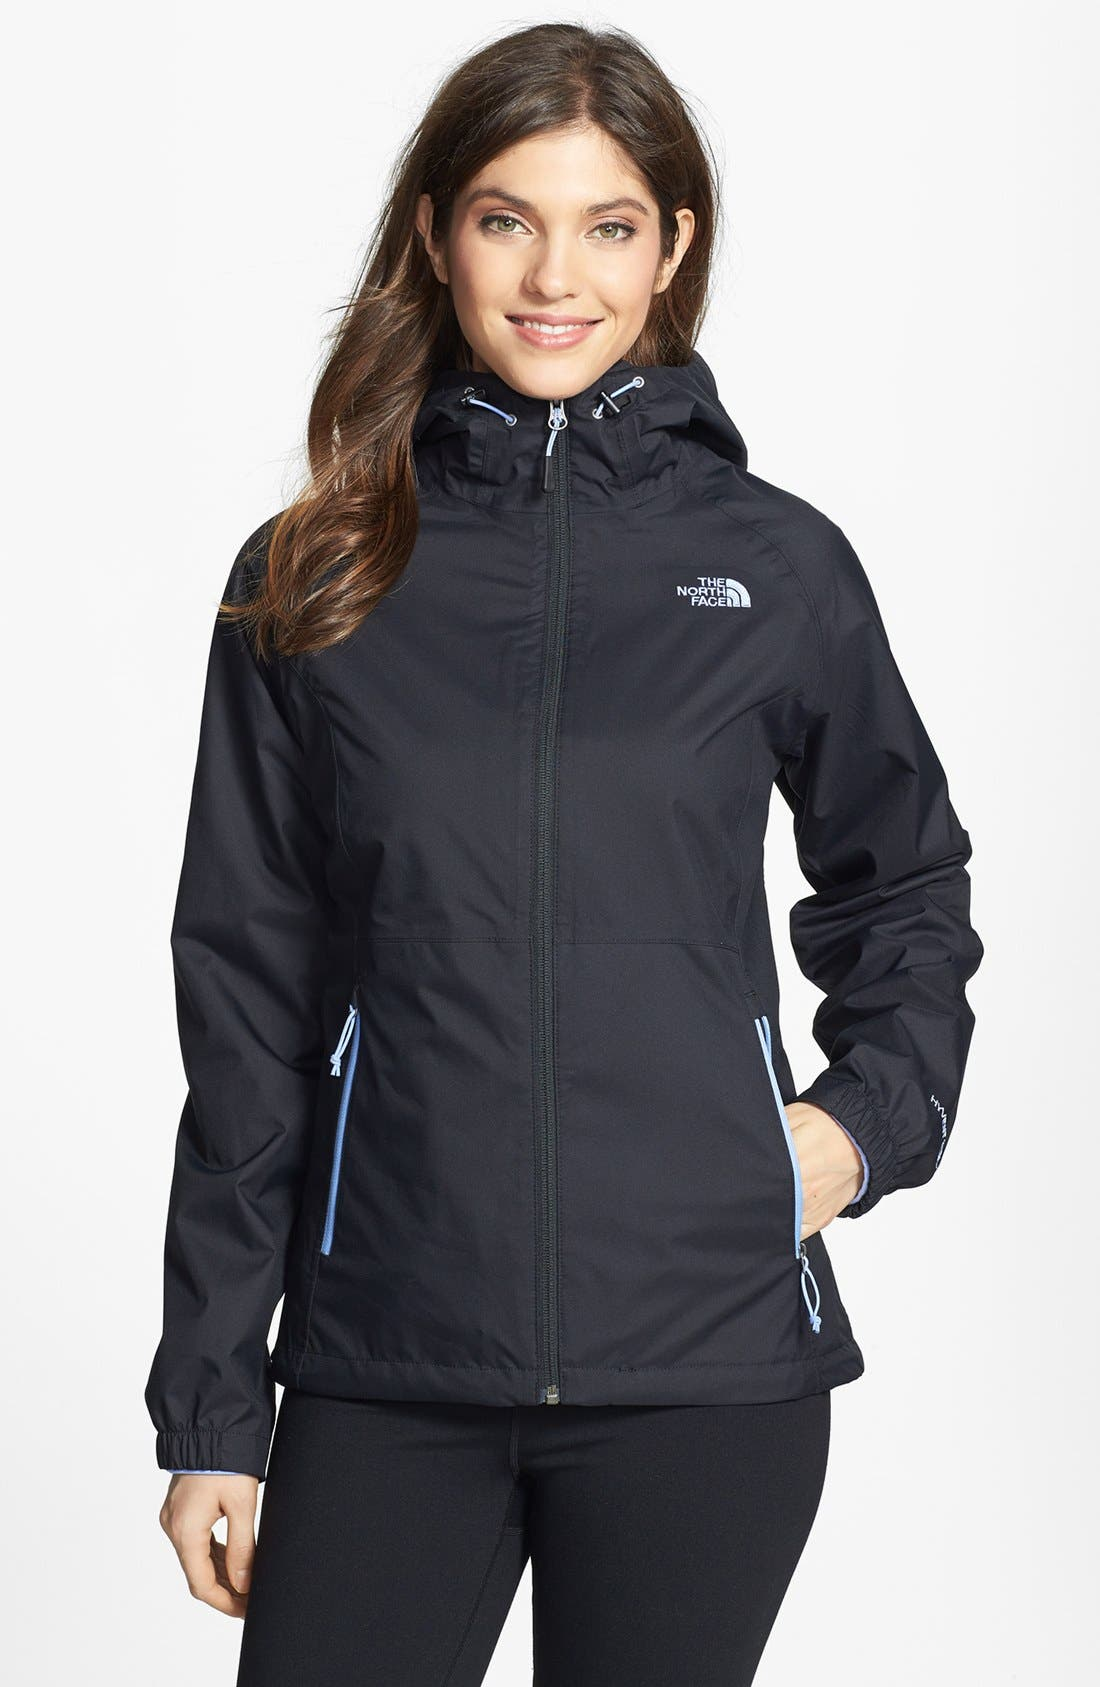 Main Image - The North Face 'Momentum' TriClimate® 3-in-1 Jacket